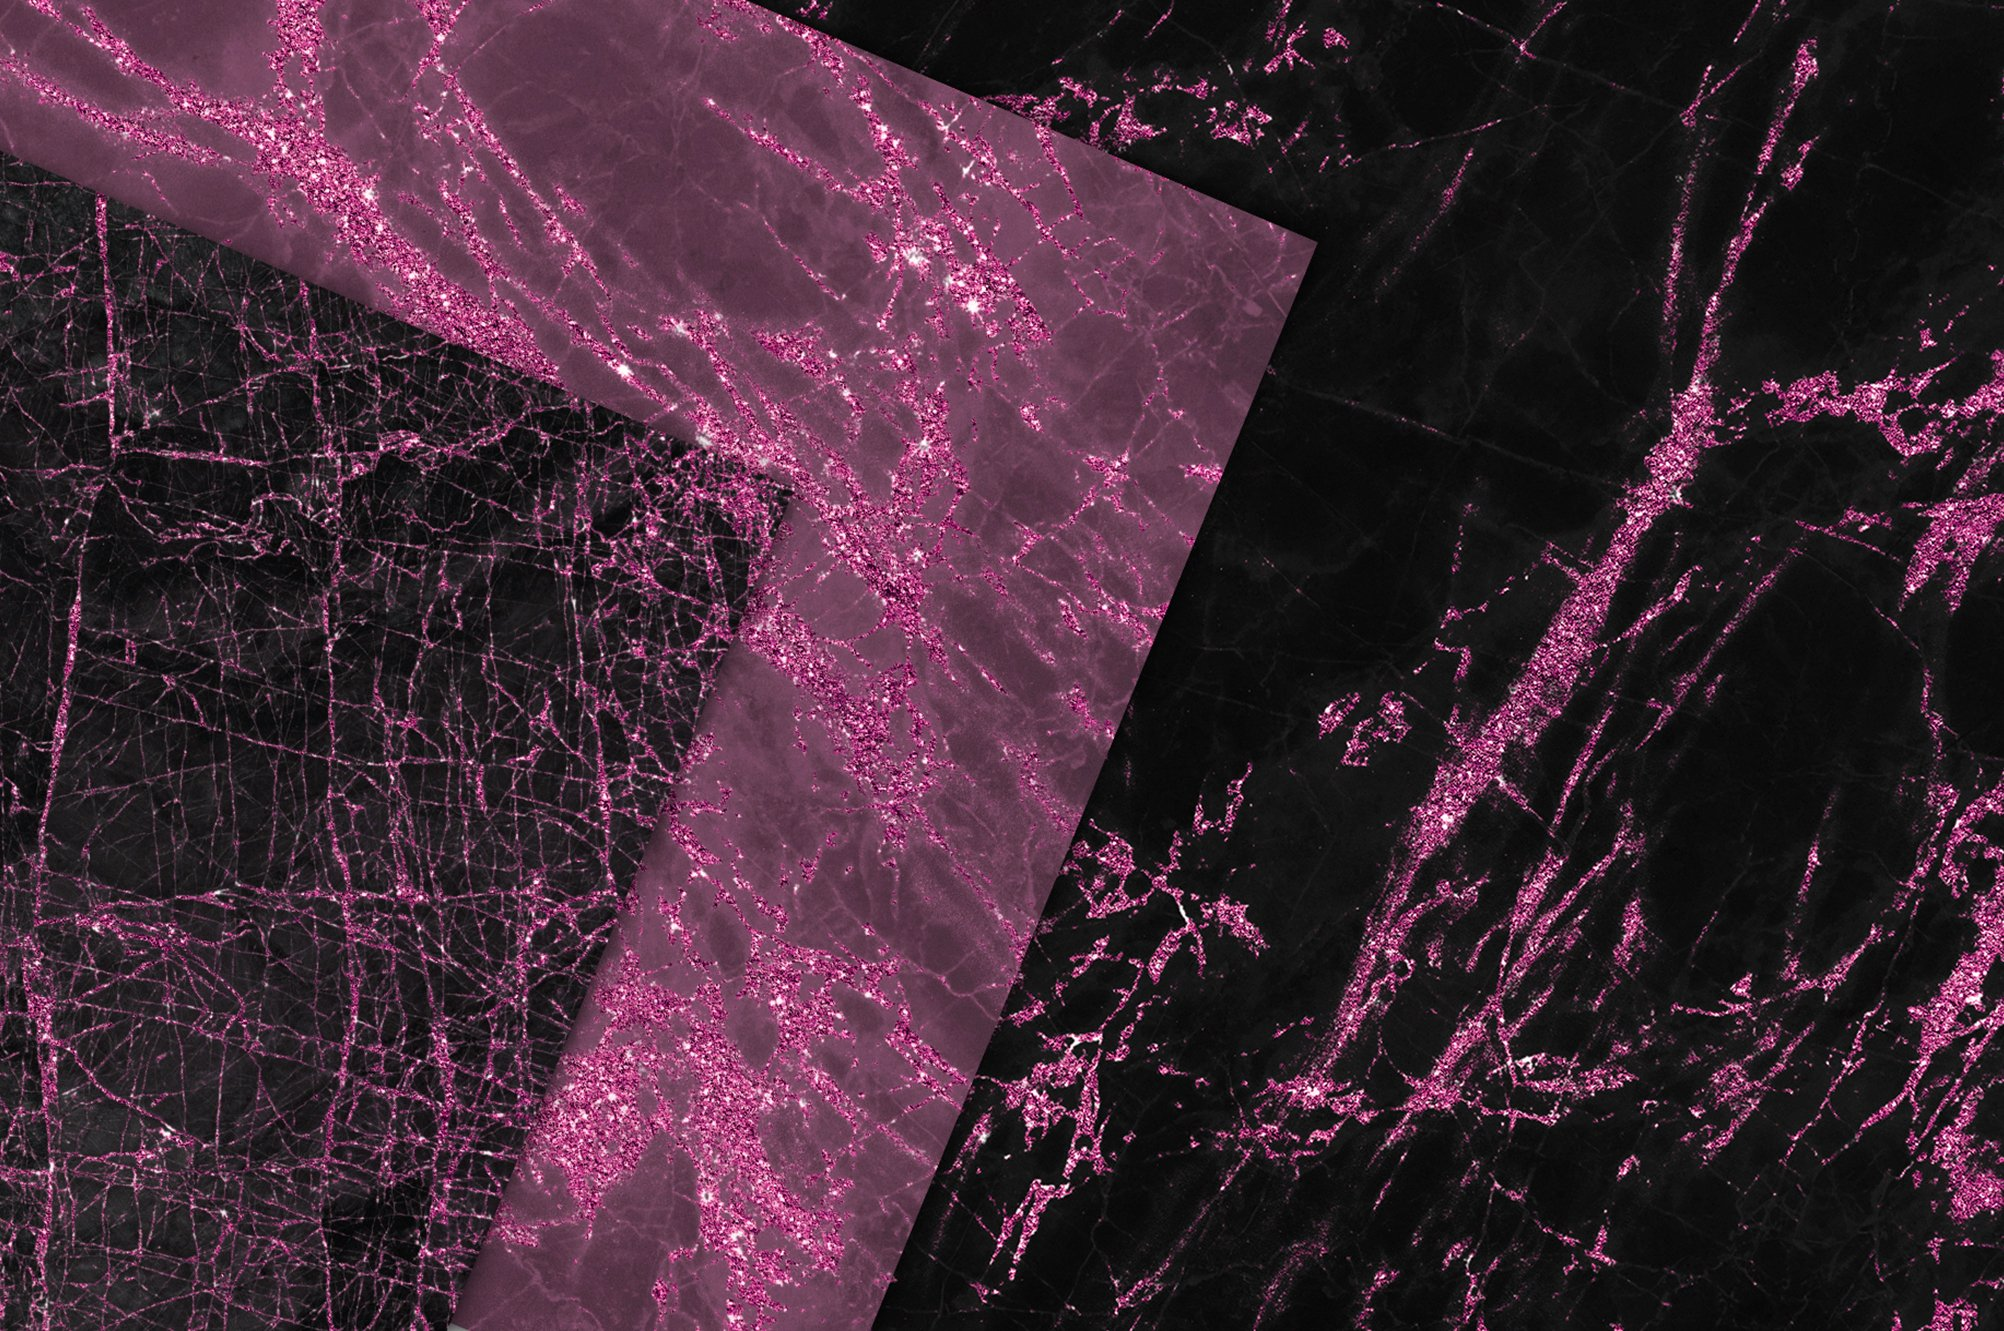 Valentine's Day Pink and Black Marble Textures example image 2